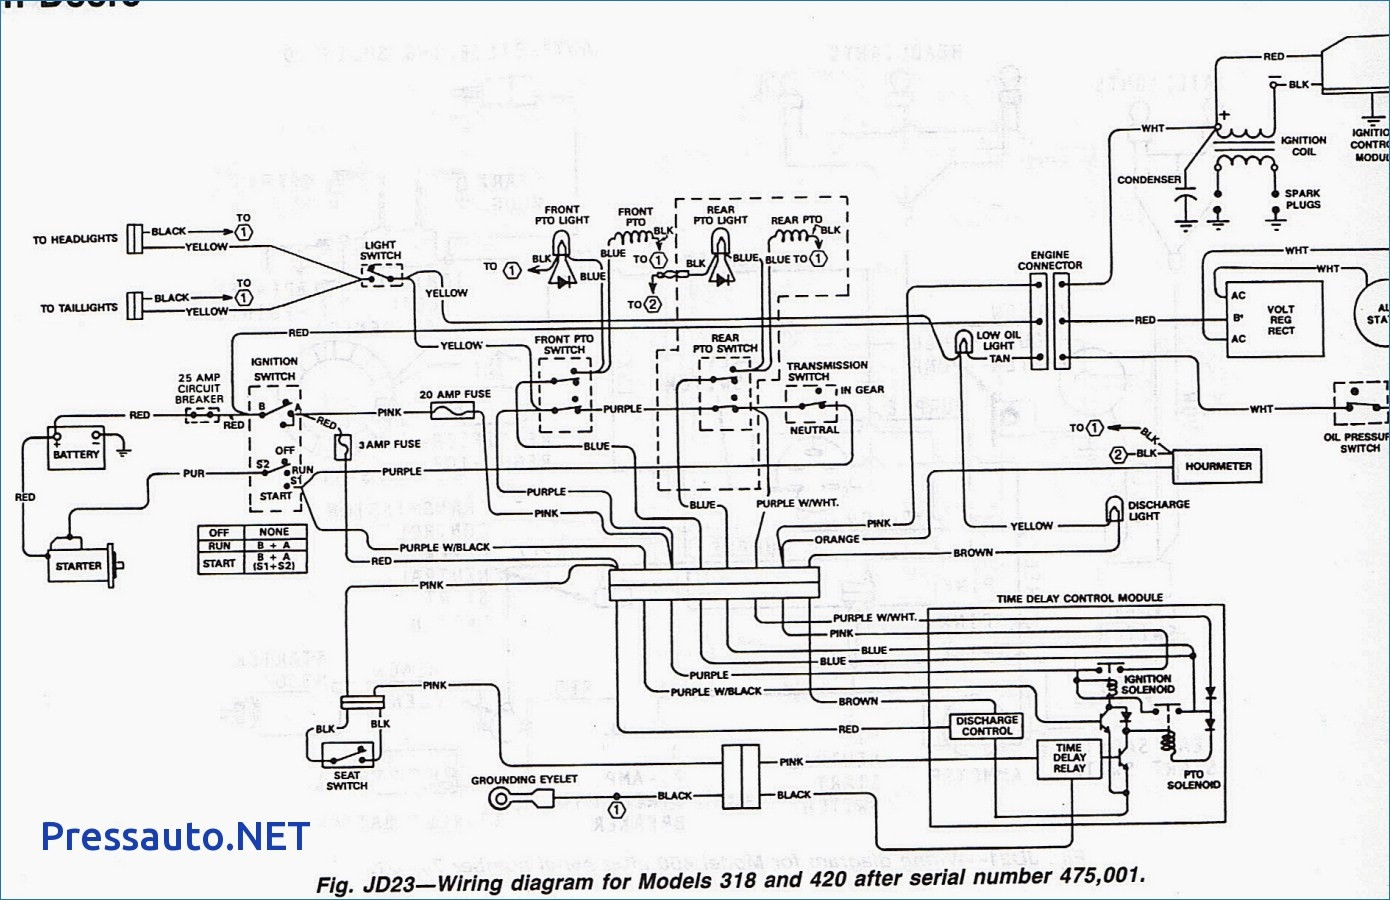 john deere stx38 wiring schematic Collection-john deere wiring schematic of la diagram lx engine diagrams l stx rh natebird me 17-n